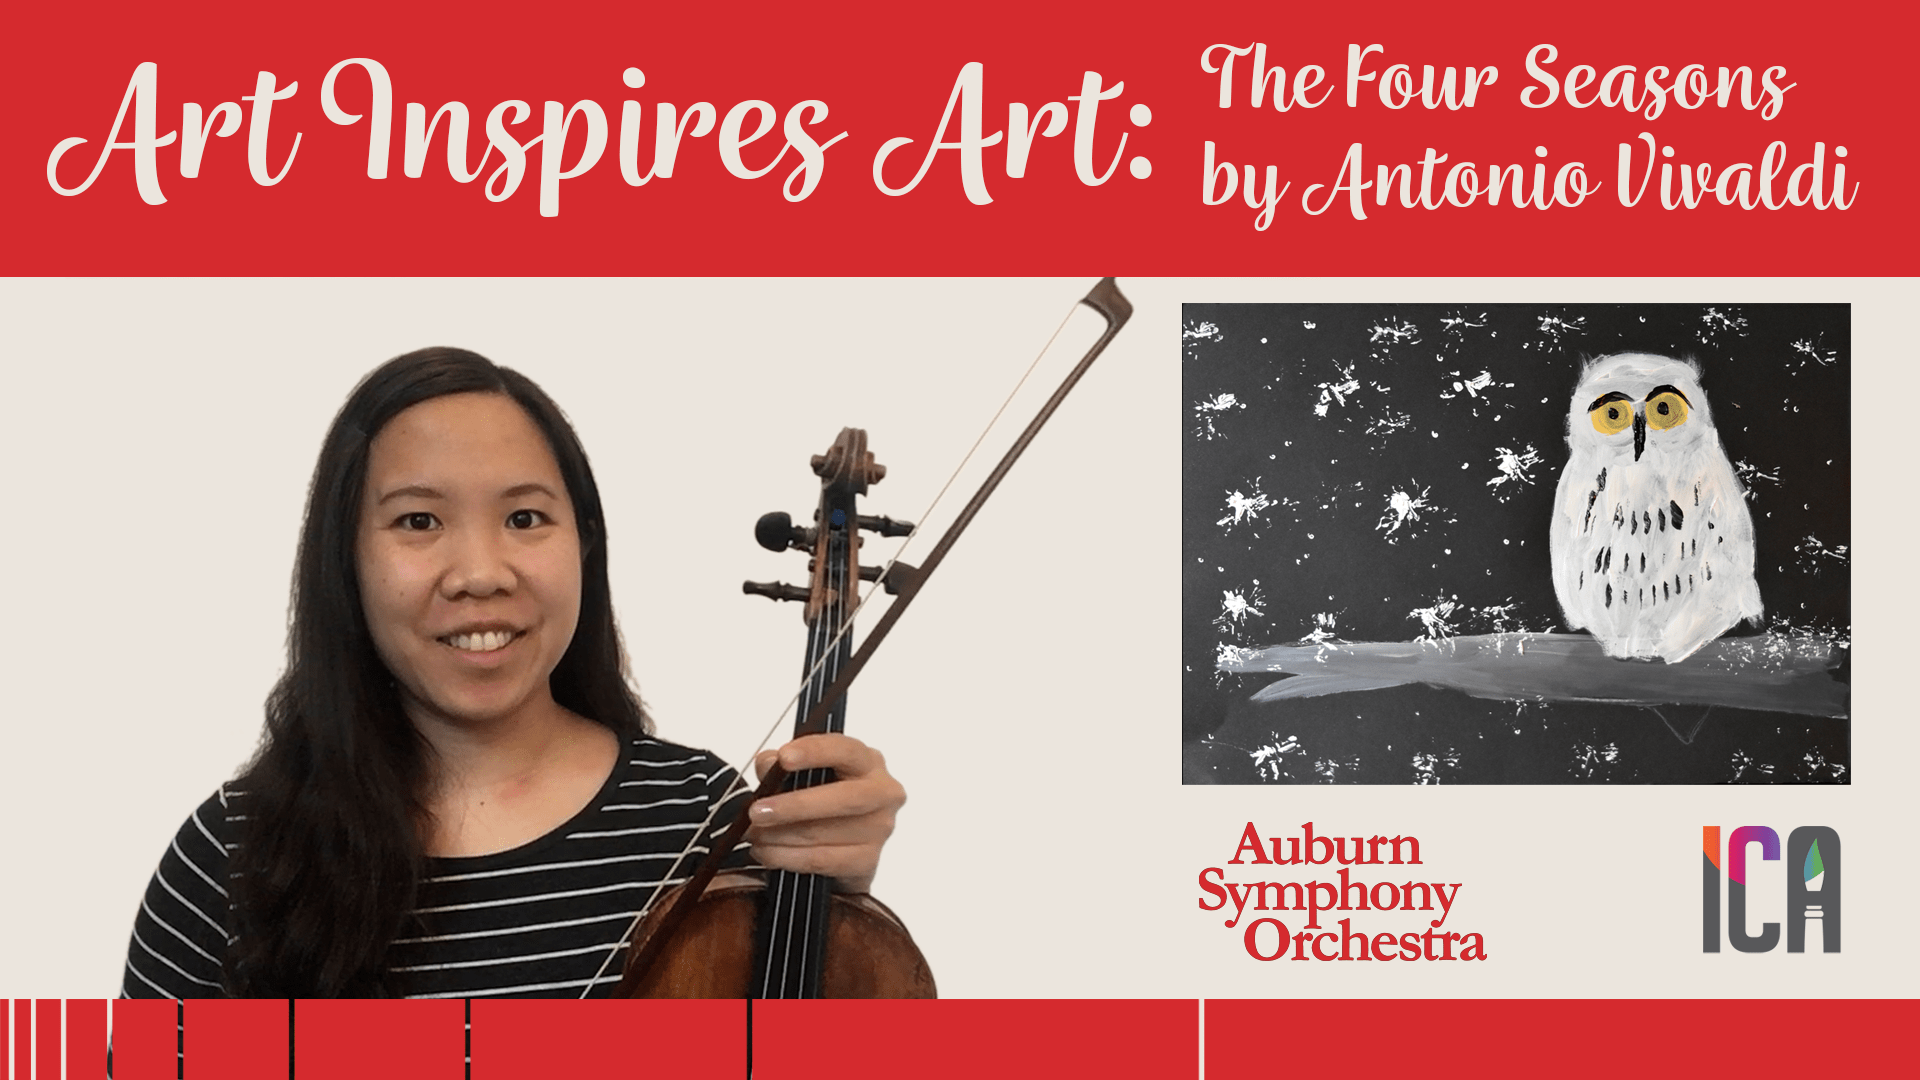 A graphic promoting the Auburn Symphony Orchestra Art Inslires Art performance. Emilie Choi holds a violin and bow in the middle of the graphic, to her right is an inset painting of a white owl in snow on a black background.